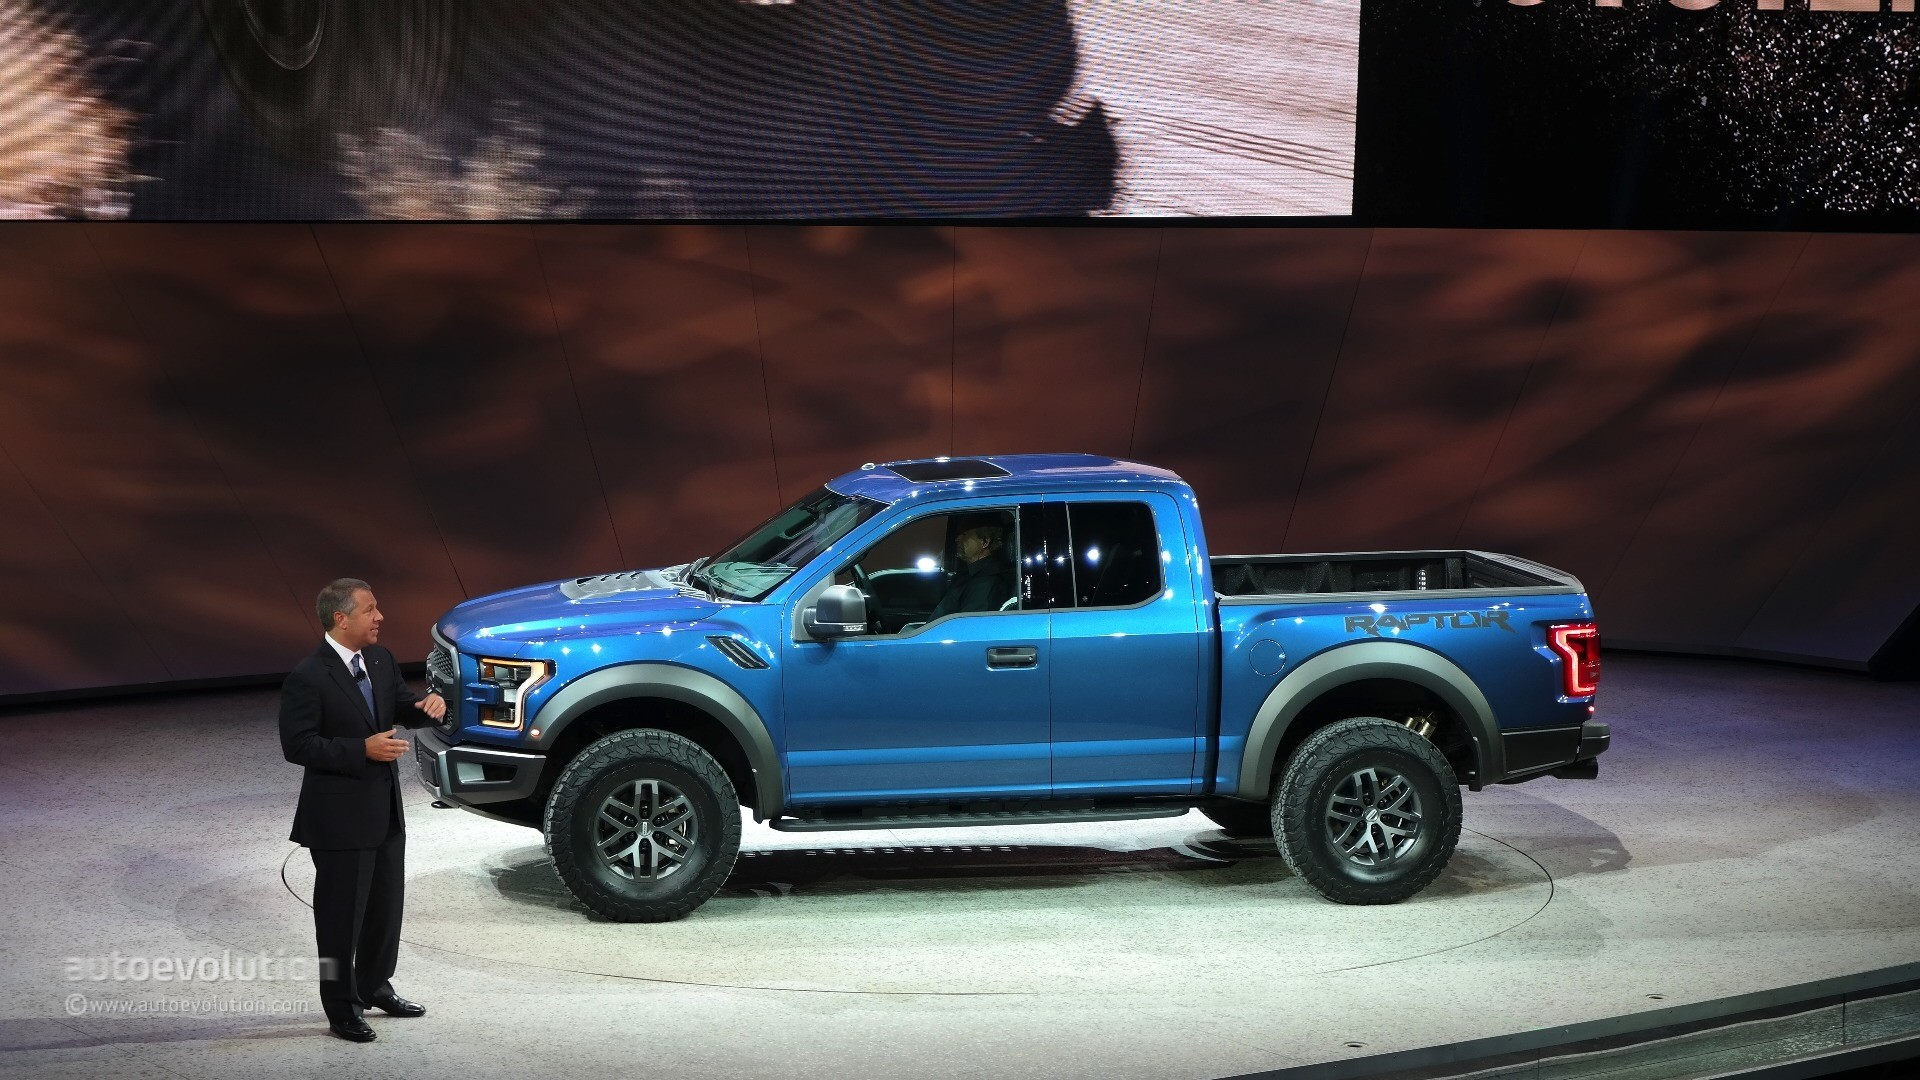 2017 Ford F 150 Raptor Priced From 49520 Autoevolution 2015 Radio Wiring Diagram Live Photo Detroit Auto Show